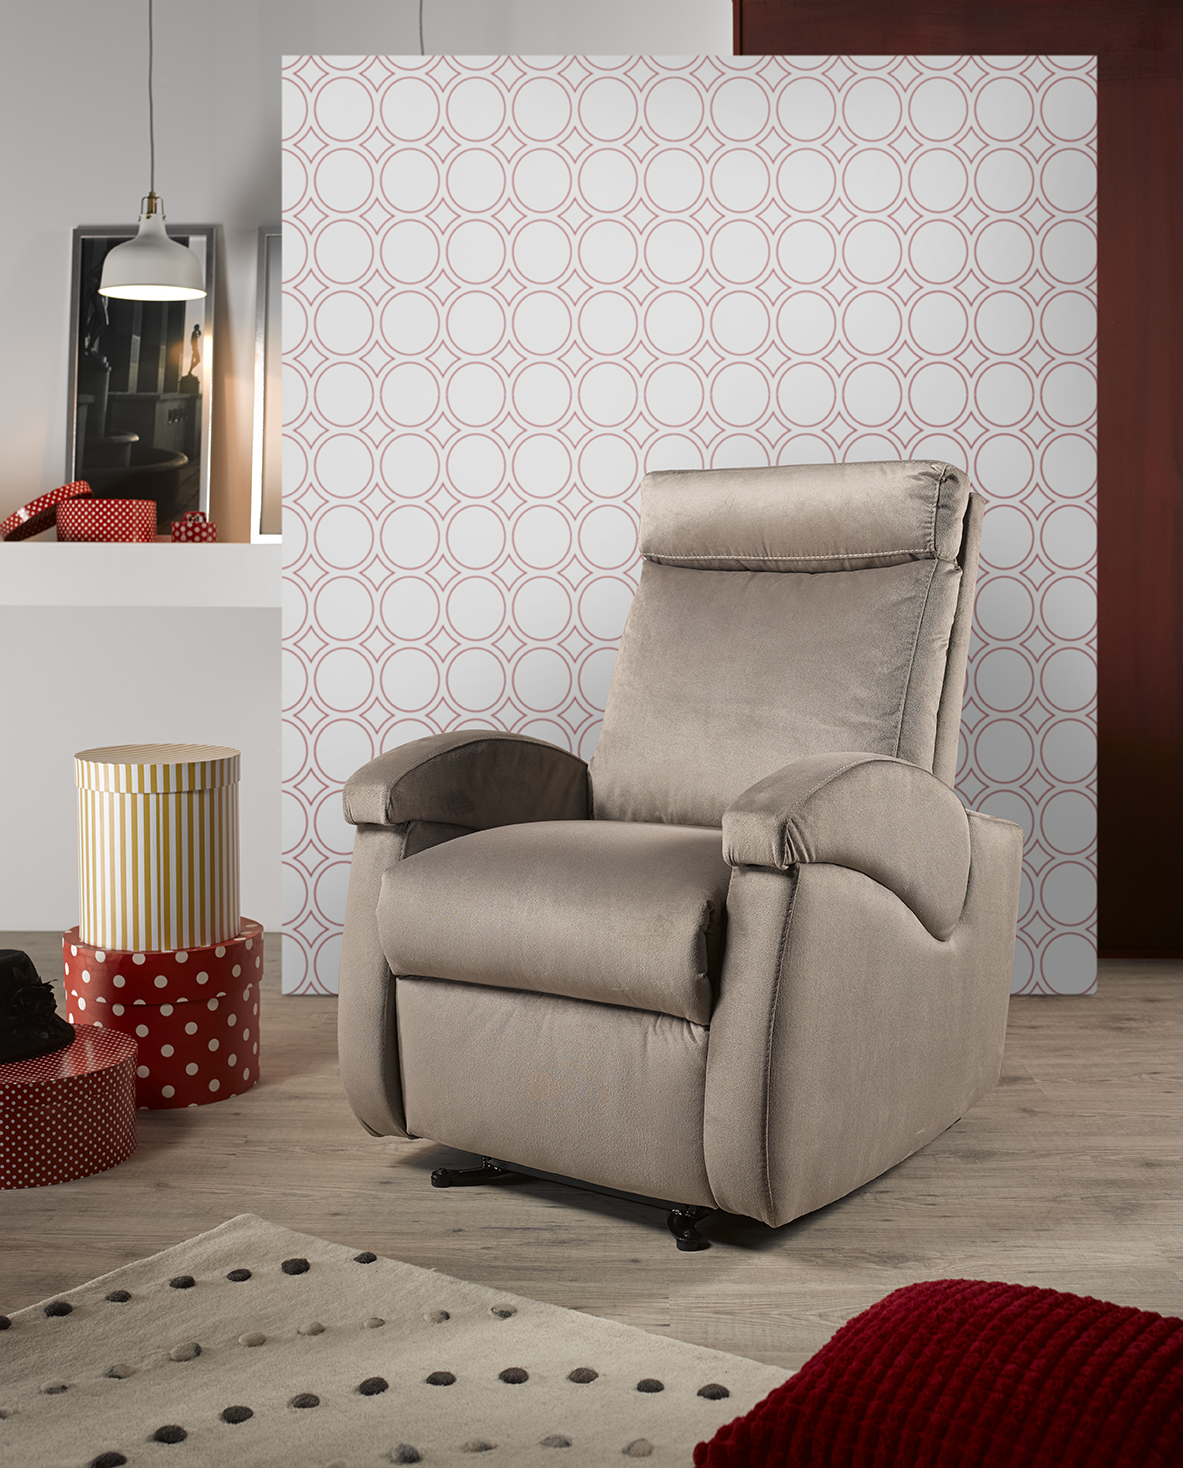 sillones-relax-General-muebles-paco-caballero-1720-5cb0ac92c408b